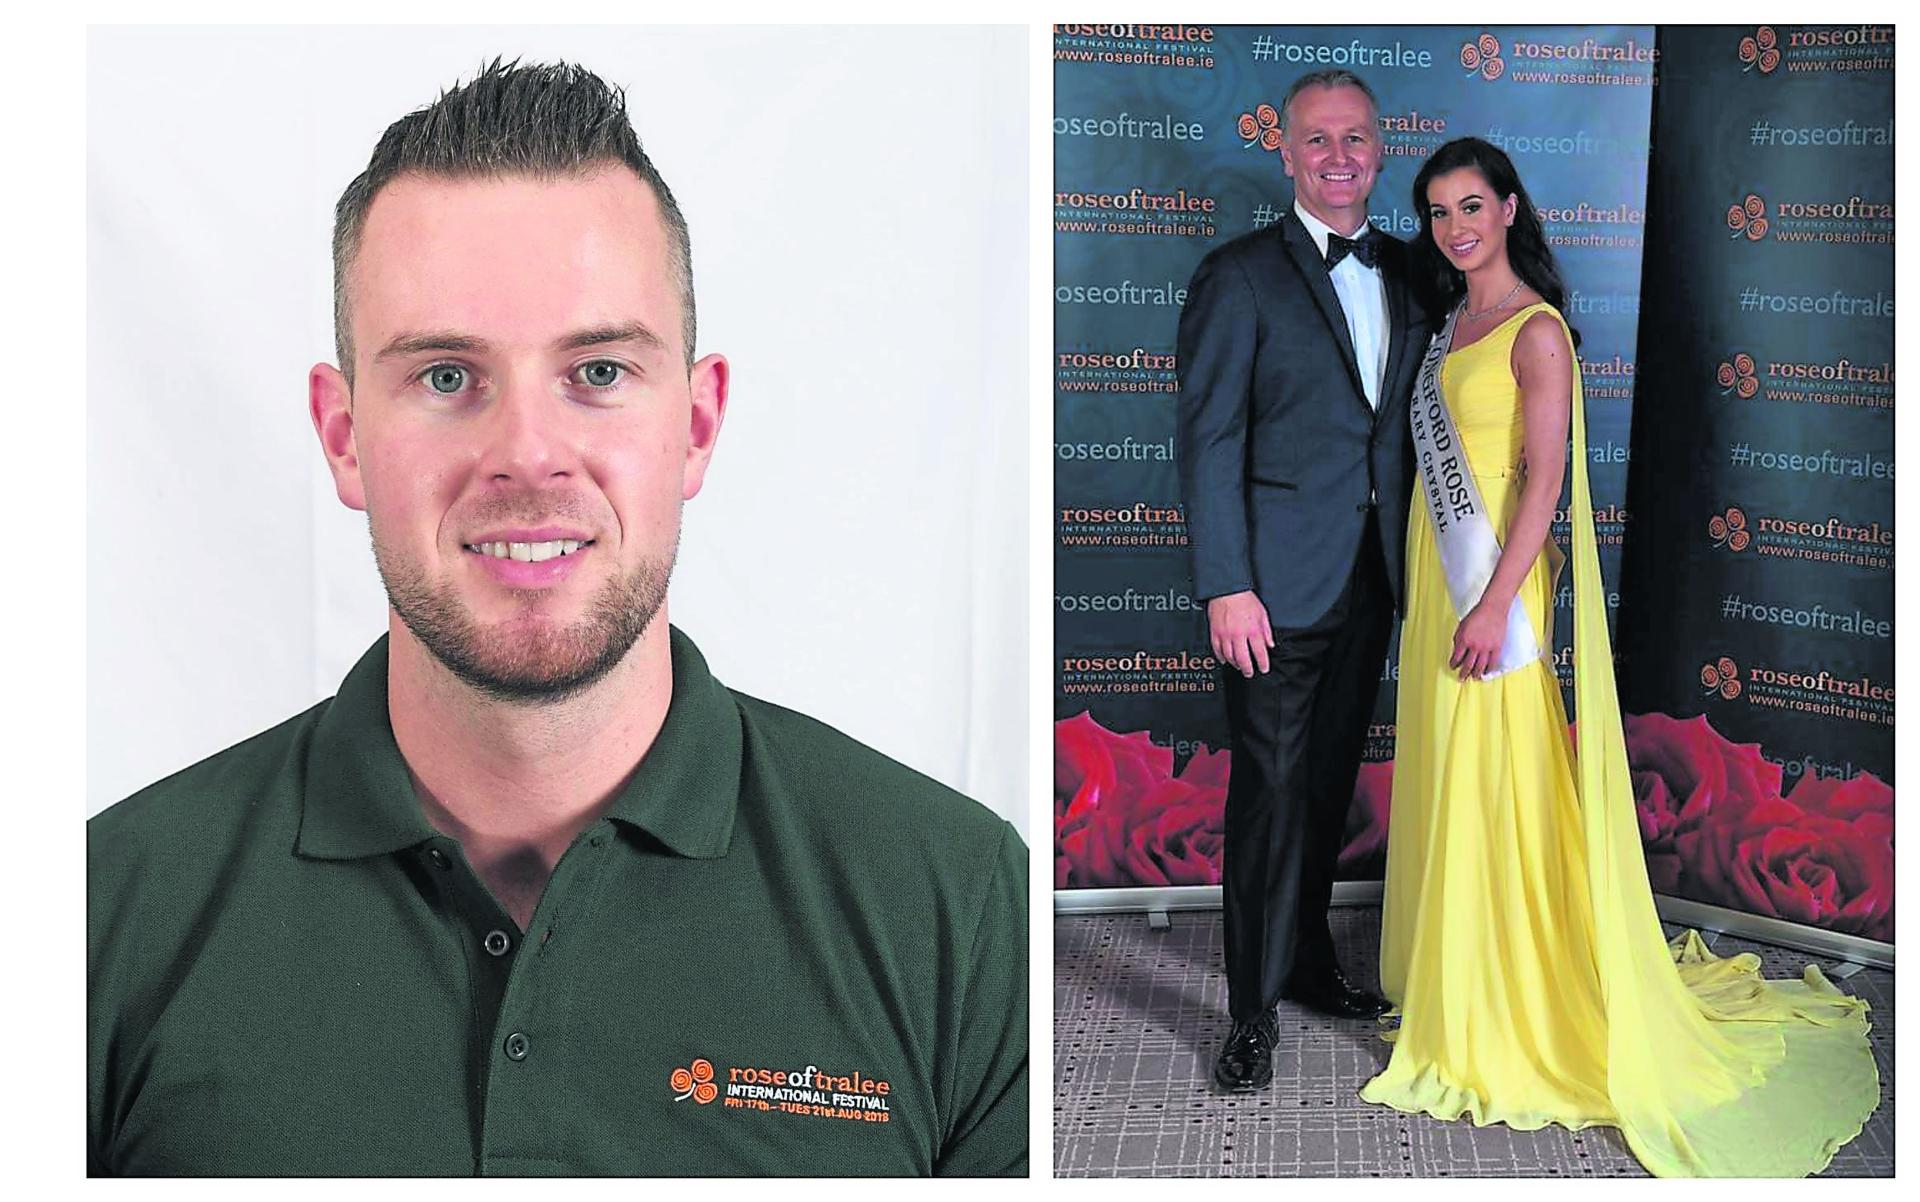 Longford man to line up as one of 57 Rose of Tralee escorts